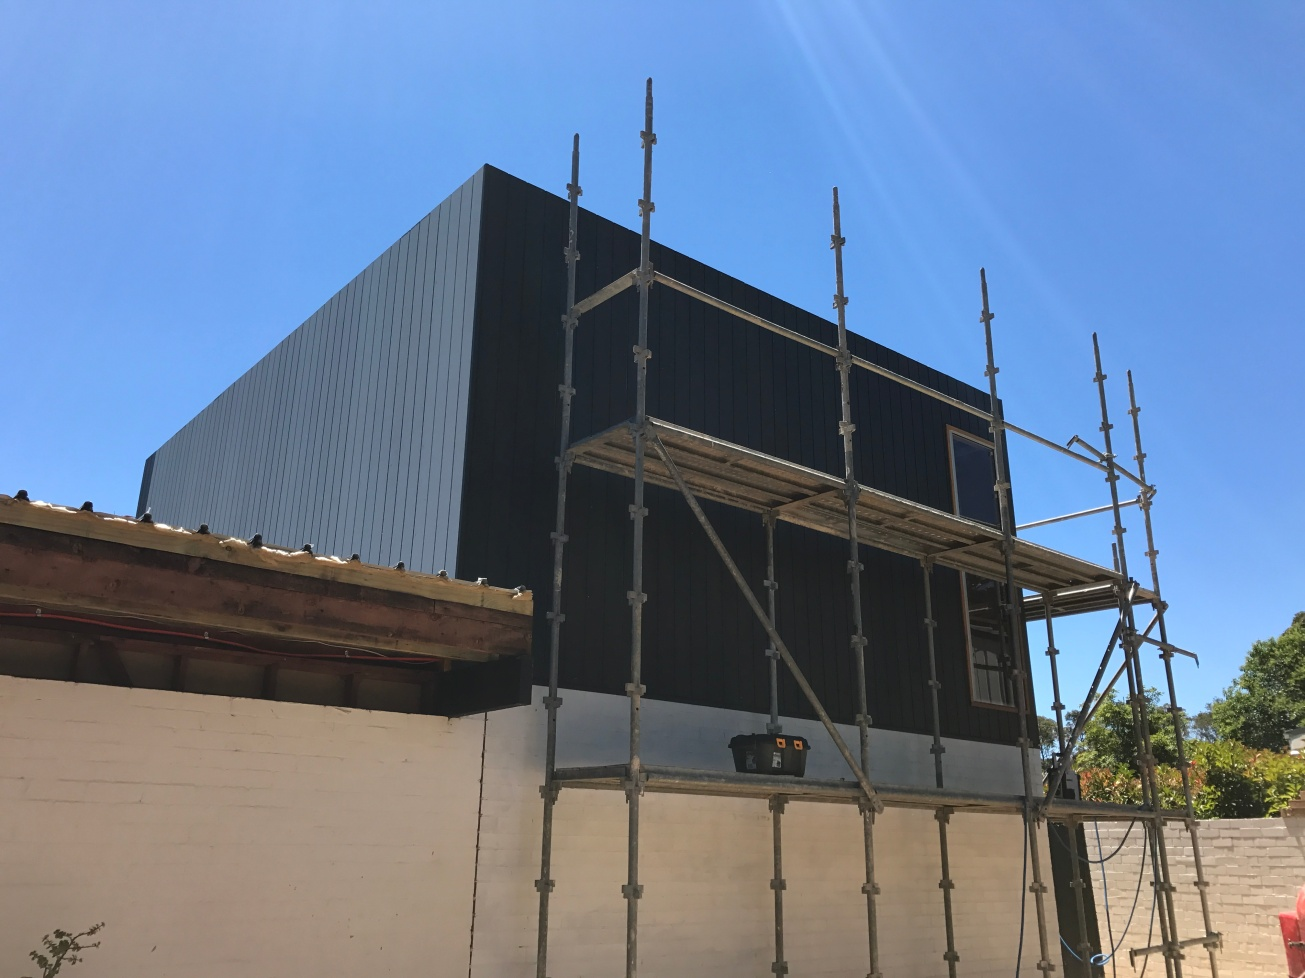 December2016: As it starts to warm up, the first of our cladding goes up on the living room extension. Hoorah! We've even managed to paint. Much debate over black or Monument ensued before Monument was agreed. It matches the new roofing, gutters and capping. And the fascia on the old part of the house will match eventually too. The lower brick wall has been primed.